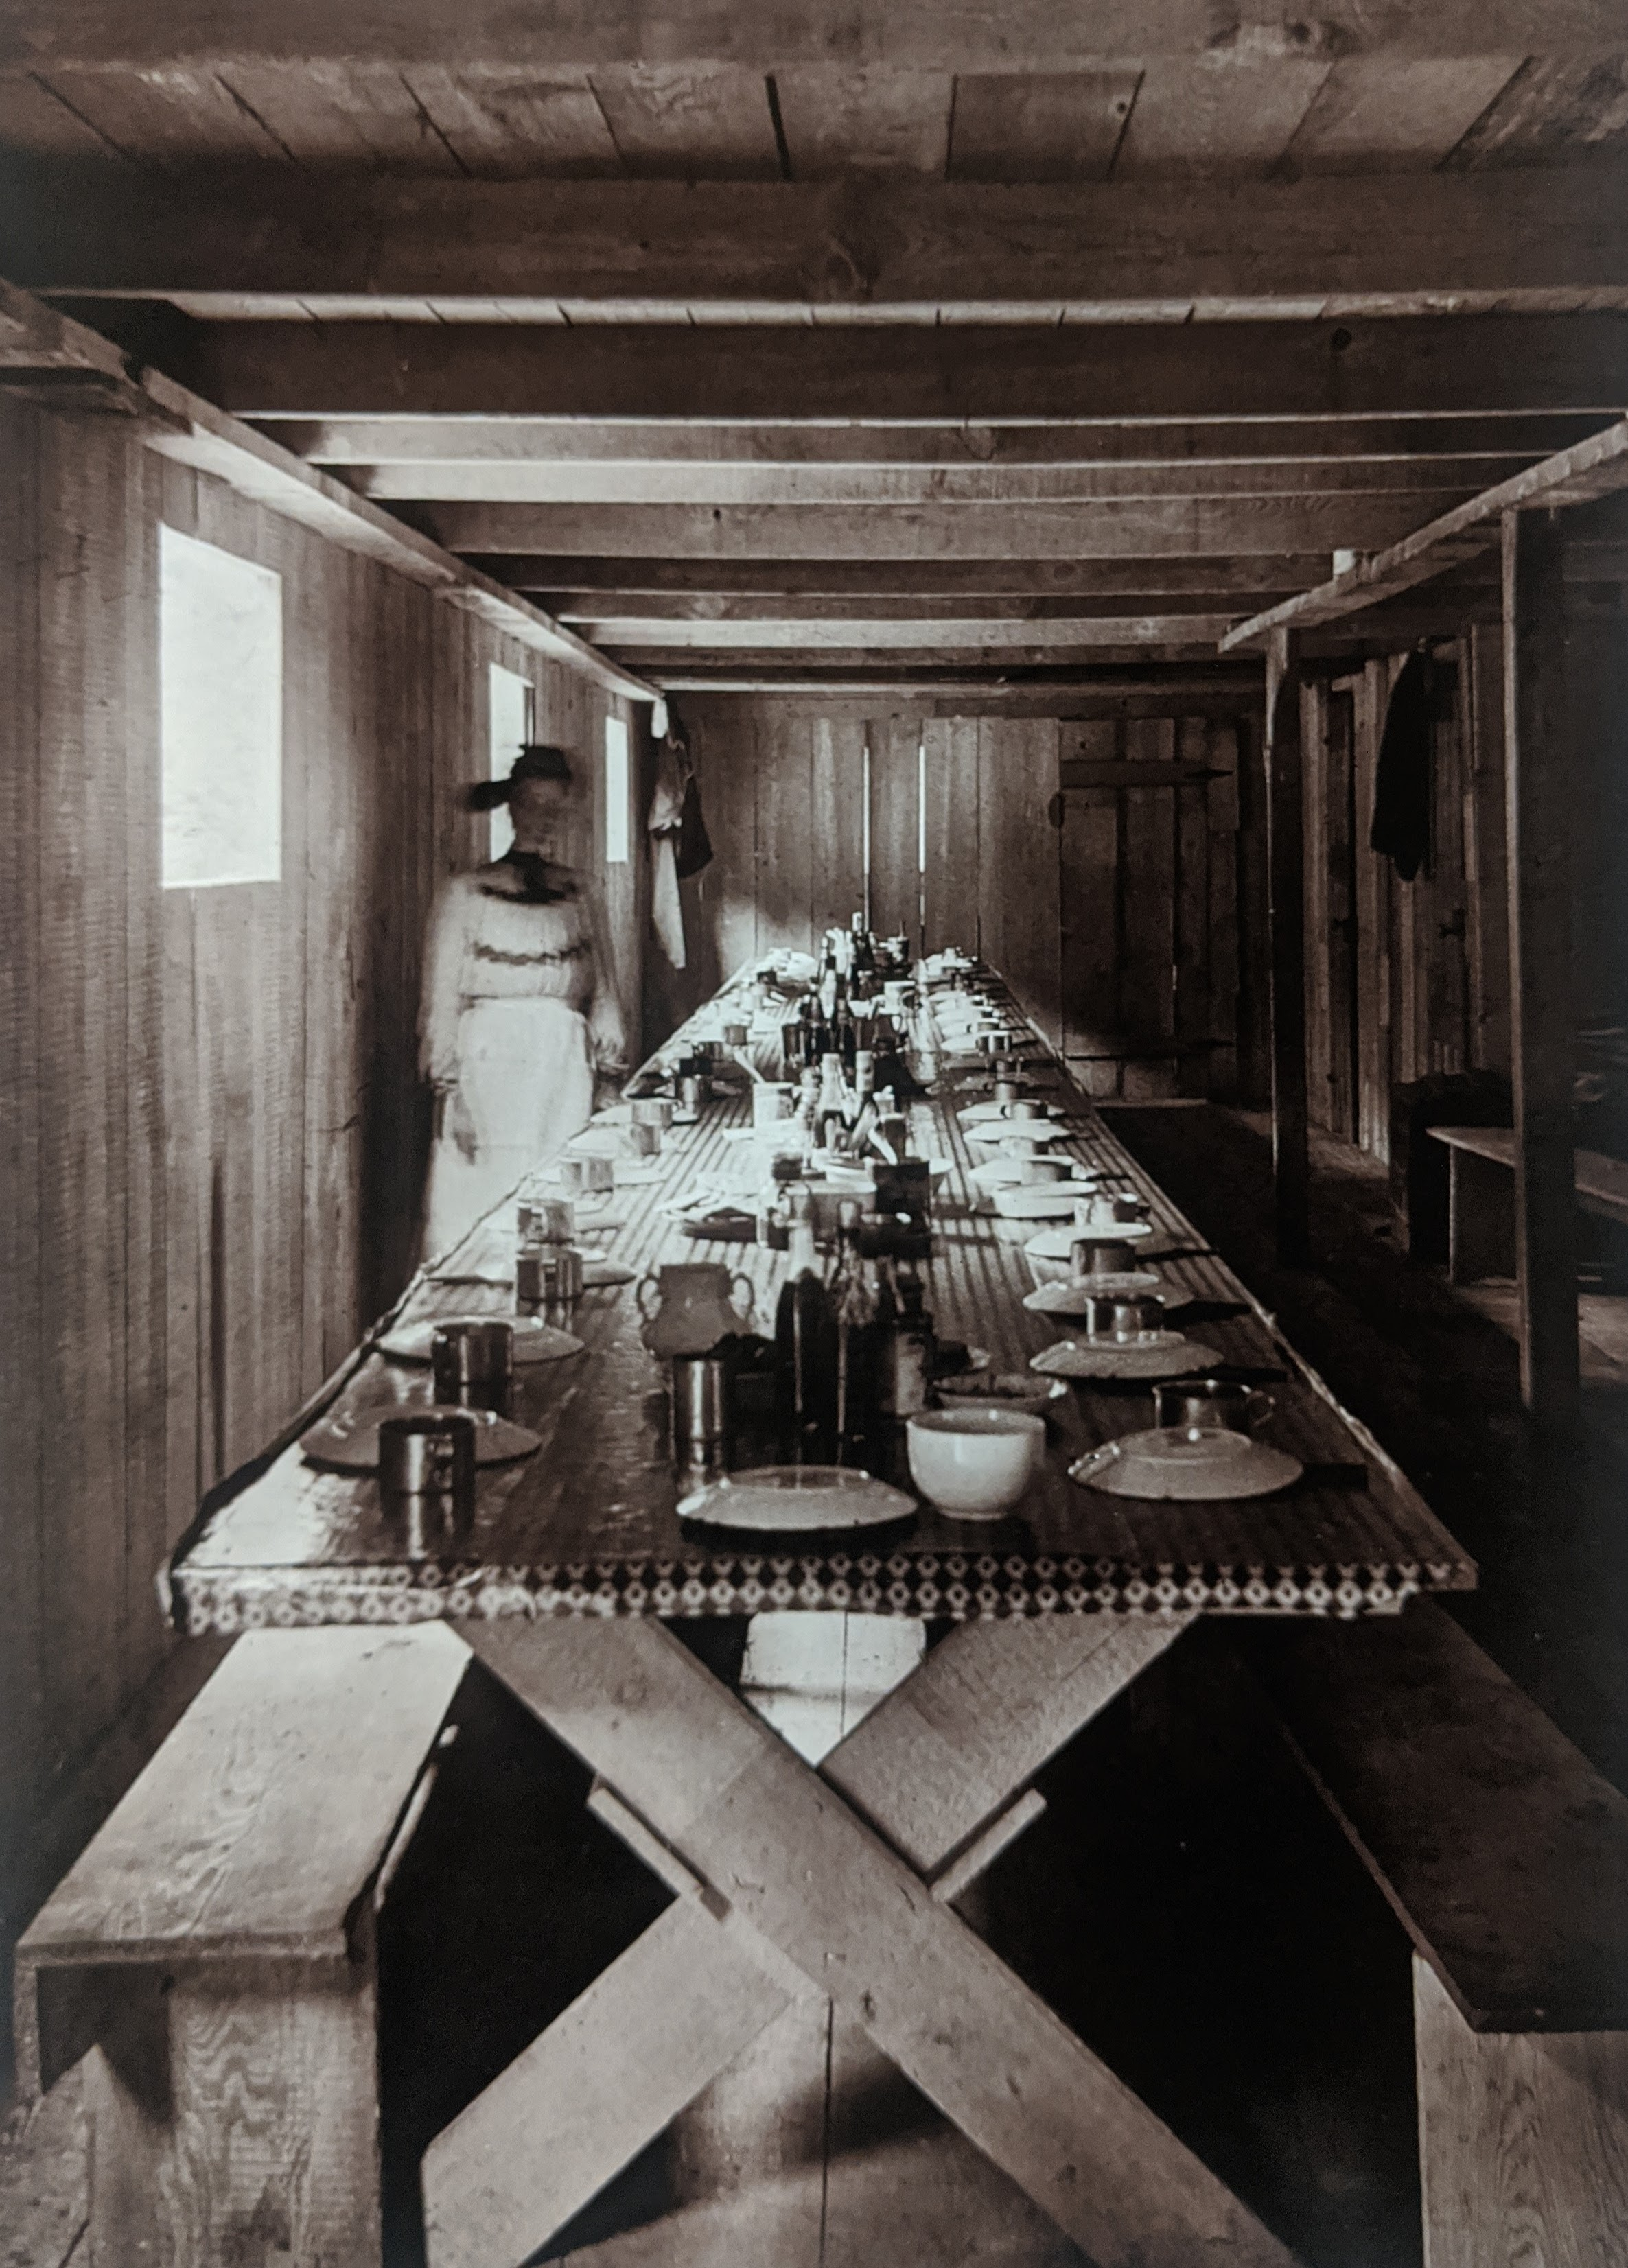 Photo taken by William T. Clarke. The interior of a dining room set up for dinner.